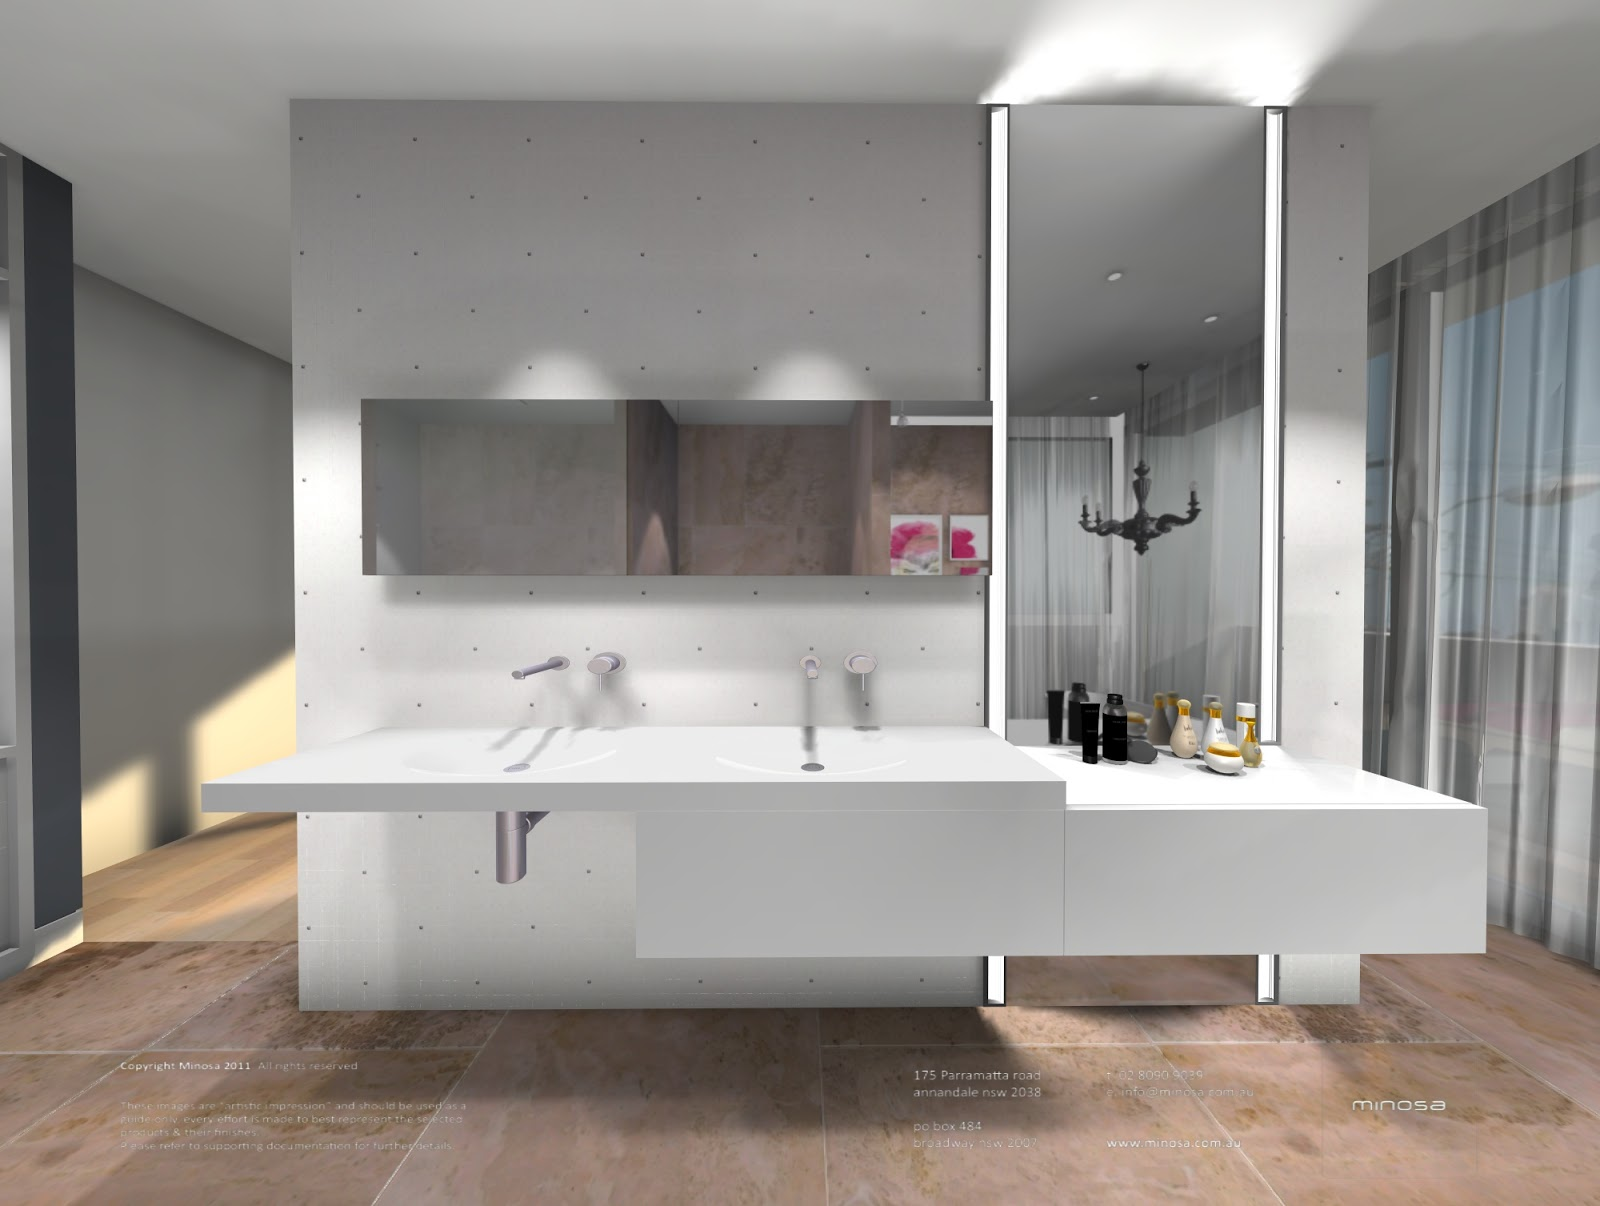 Minosa new minosa bathroom design resort style ensuite - See The Video Walk Thru Created For Our Clients Here Posted By Minosa